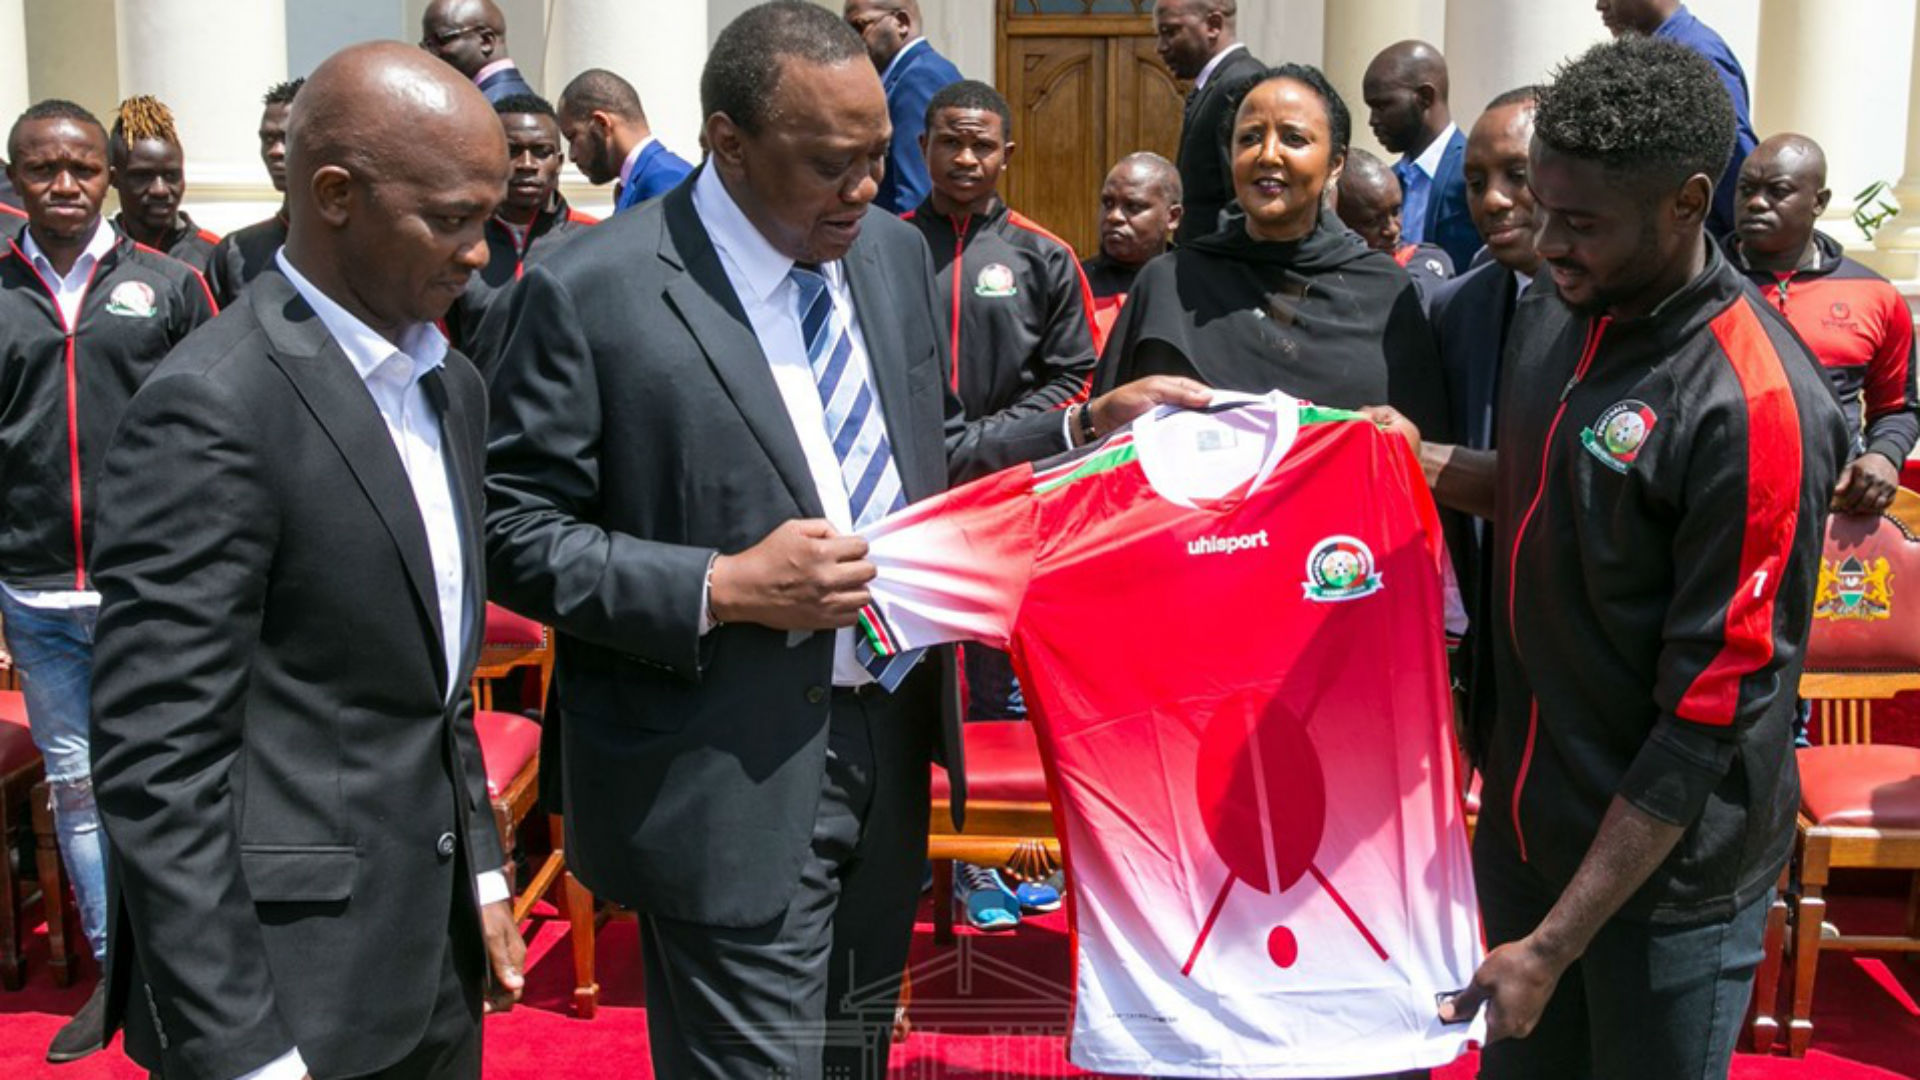 Afcon: I have a feeling Harambee Stars will win the cup, says Nick Mwendwa